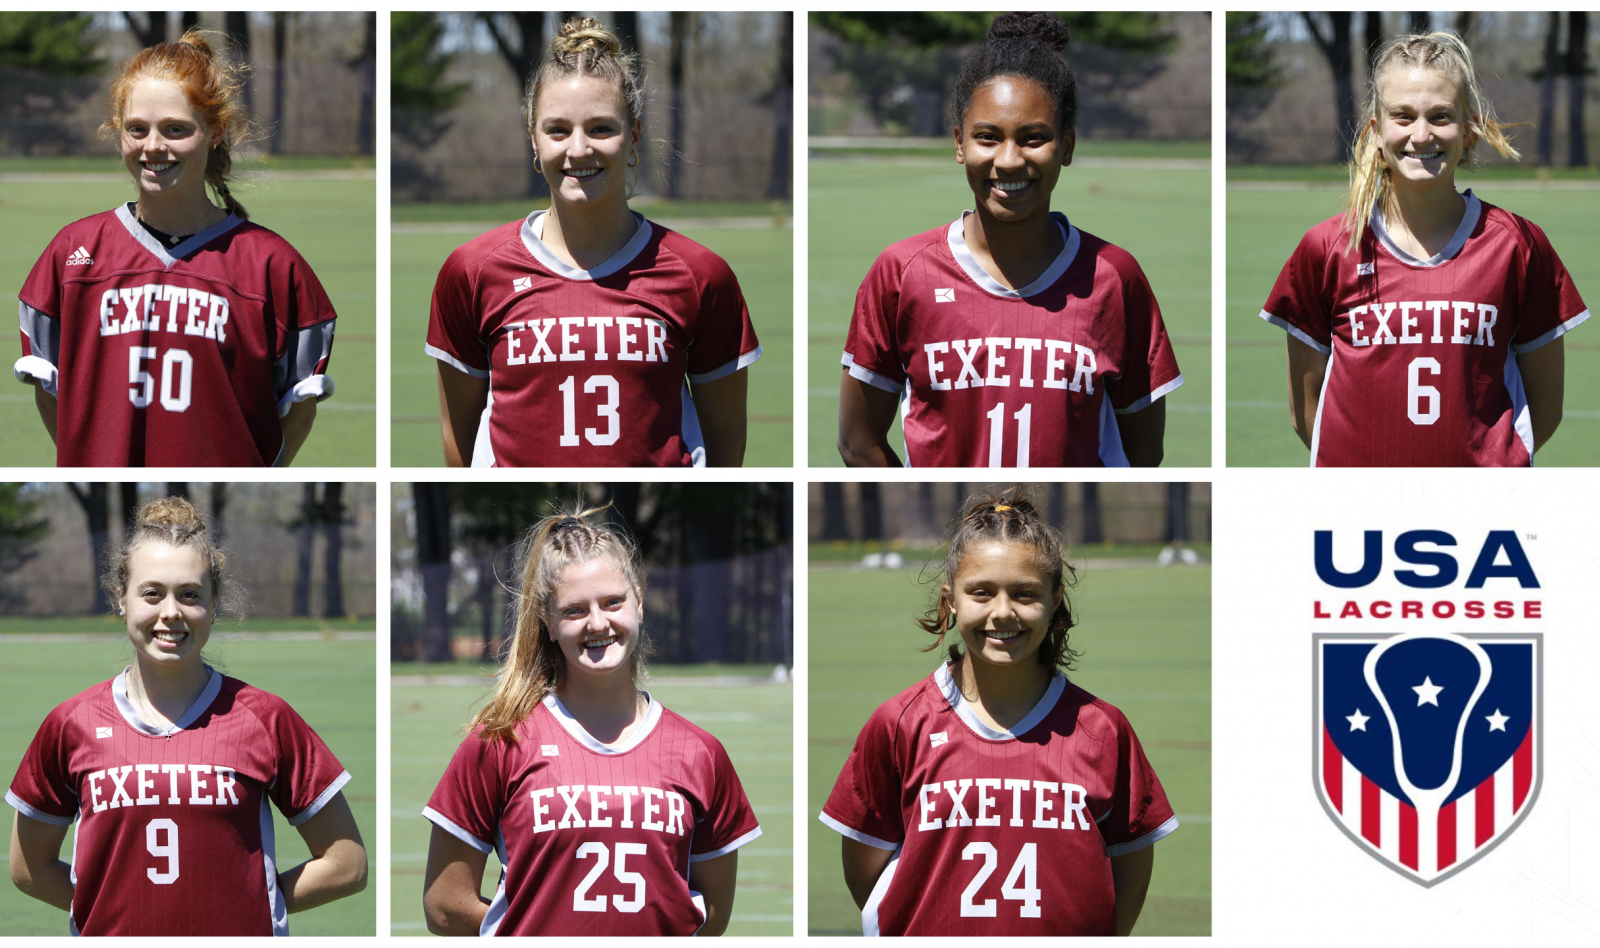 Phillips Exeter Academy Lacrosse All-America